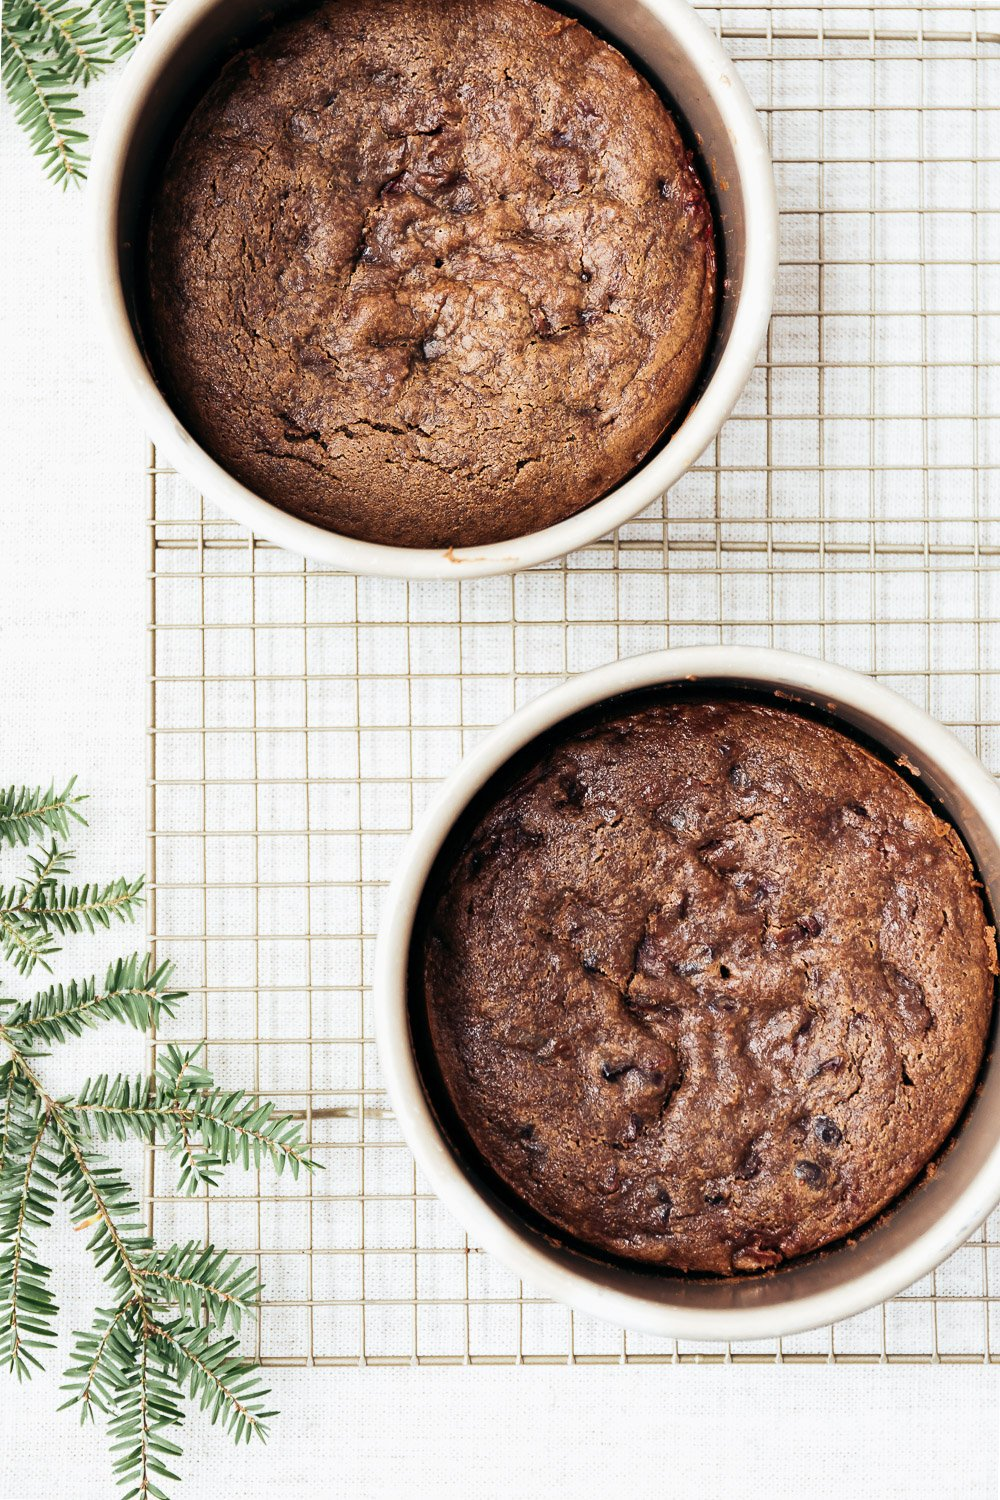 Freshly Baked Gluten Free Gingerbread Cakes are photographed right after they came out of the oven on a wire rack.